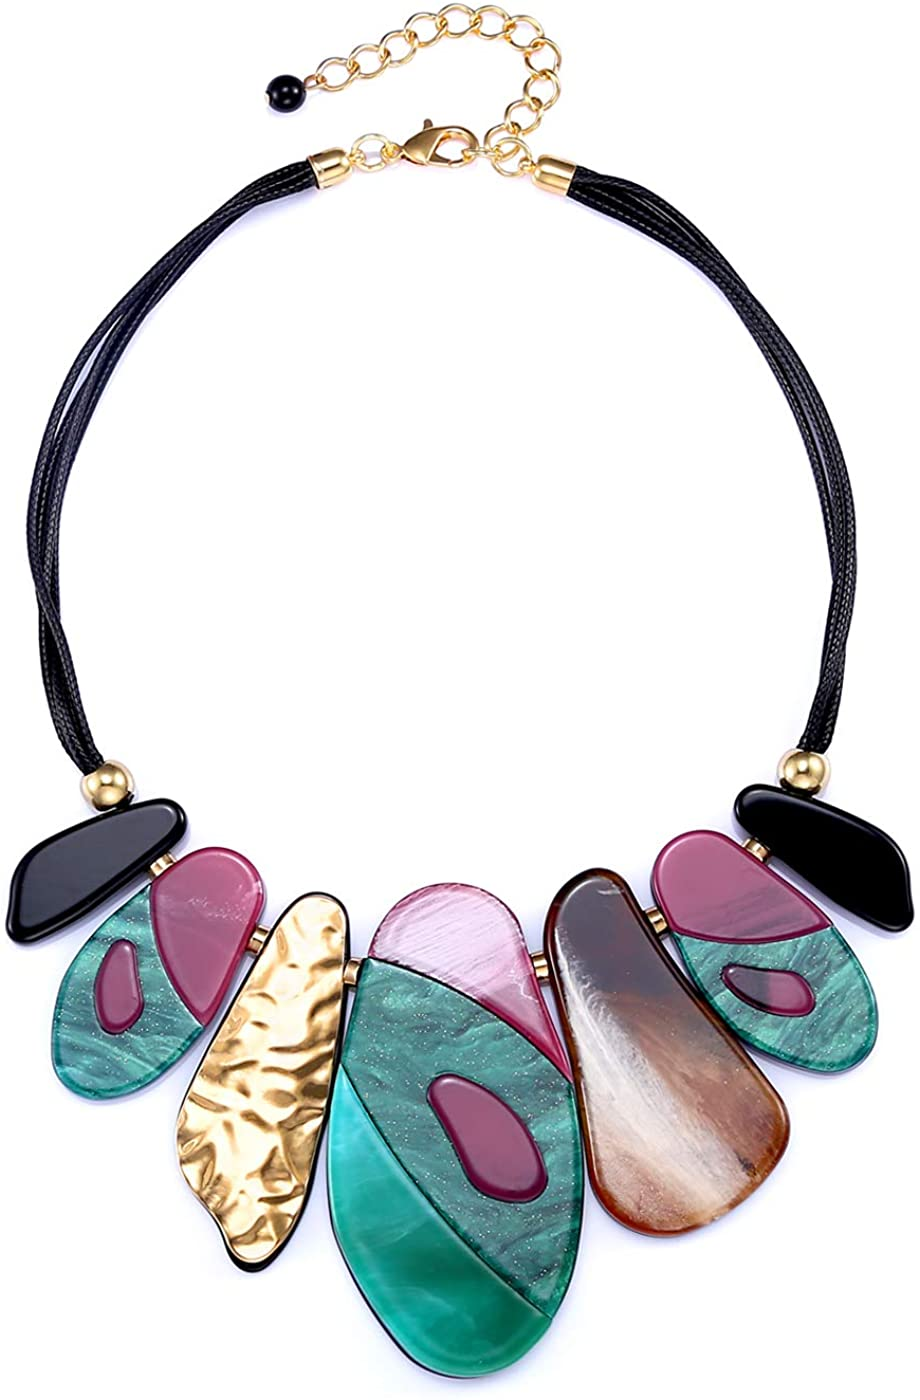 FAMARINE Vintage Tribe Chunky Collar Necklace, Geometry Acrylic Pendant Bib Statment Necklace Multicolor Costume Jewelry for Women